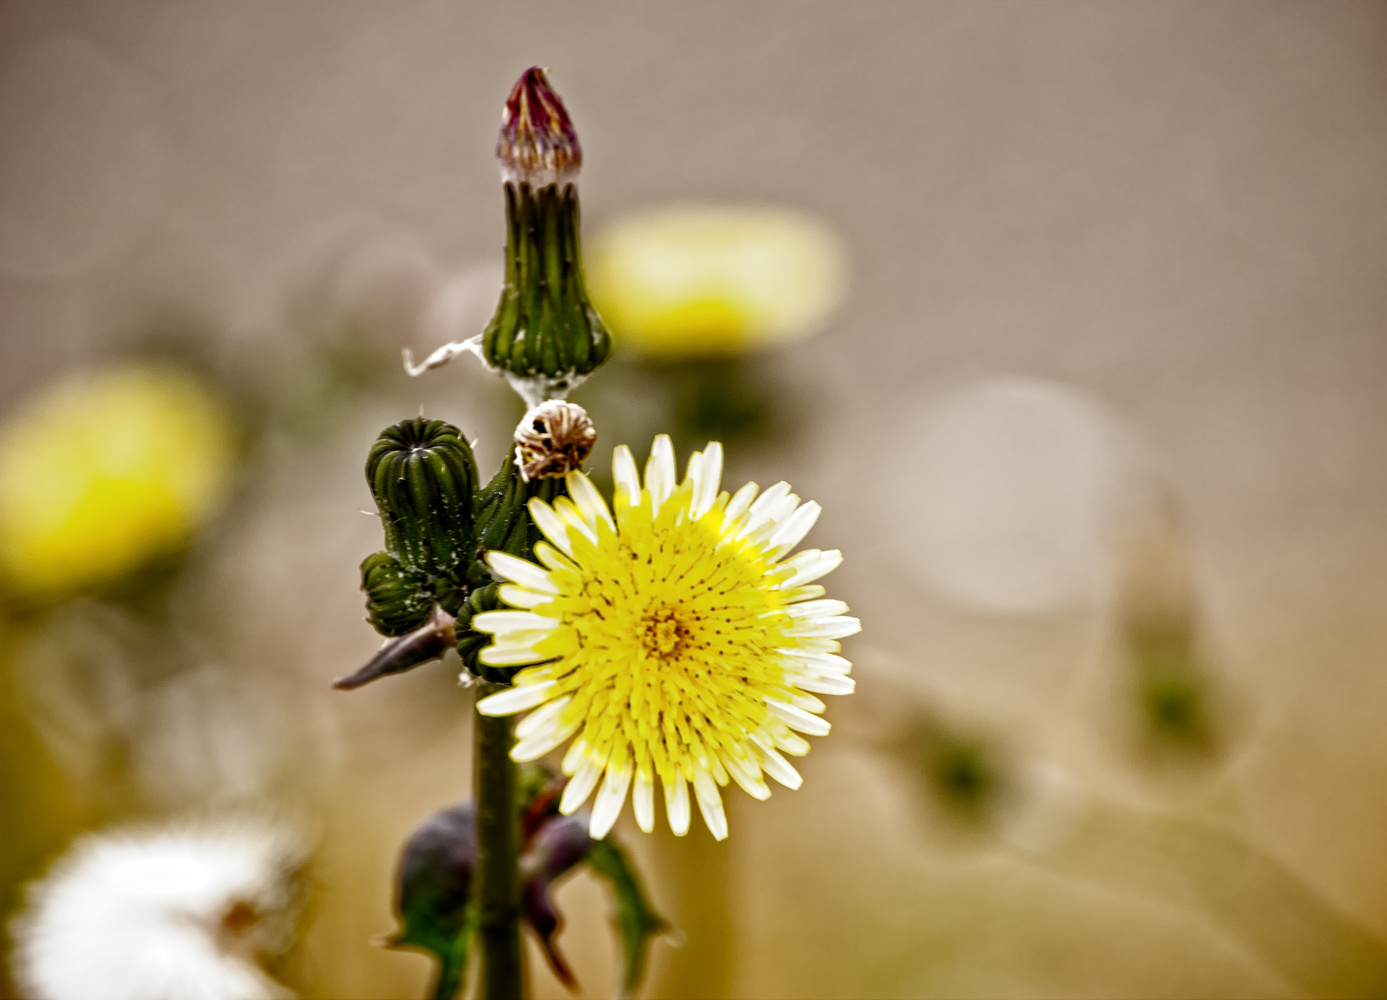 Dandelion by Shawn Donnelly